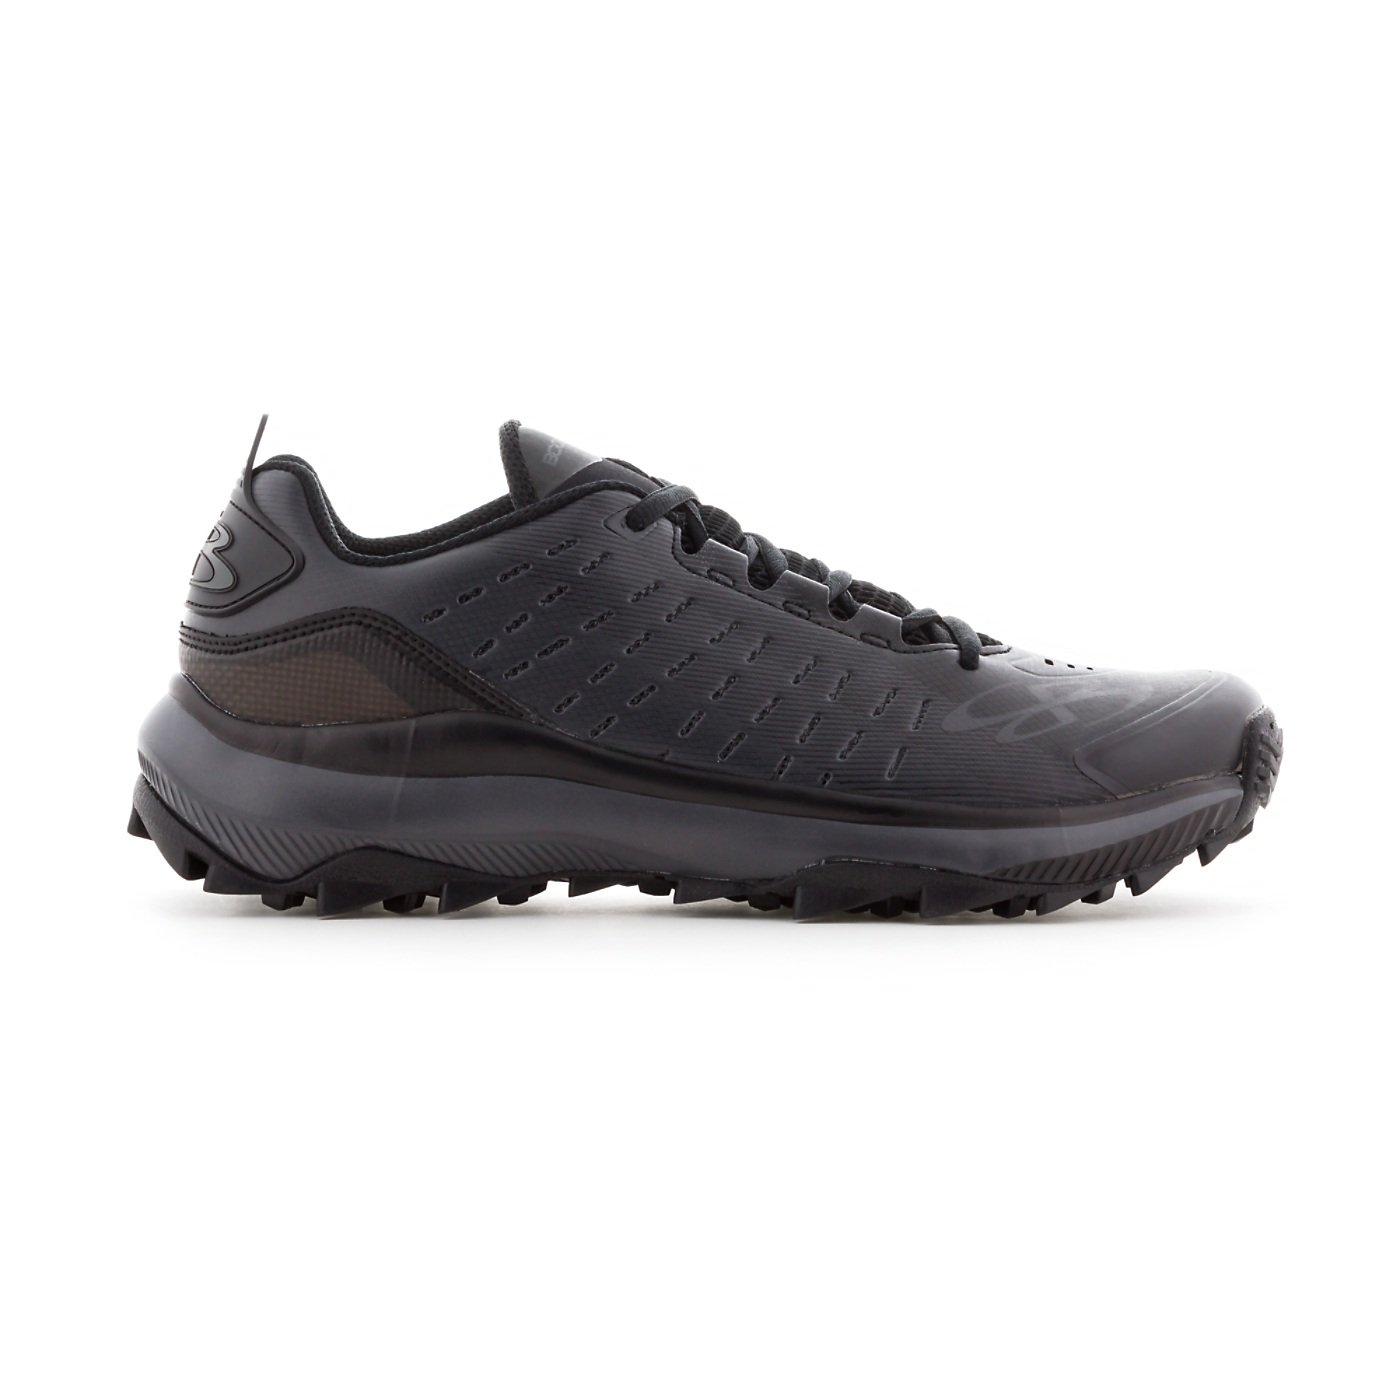 Boombah Men's Catalyst Turf Black/Charcoal - Size 13 by Boombah